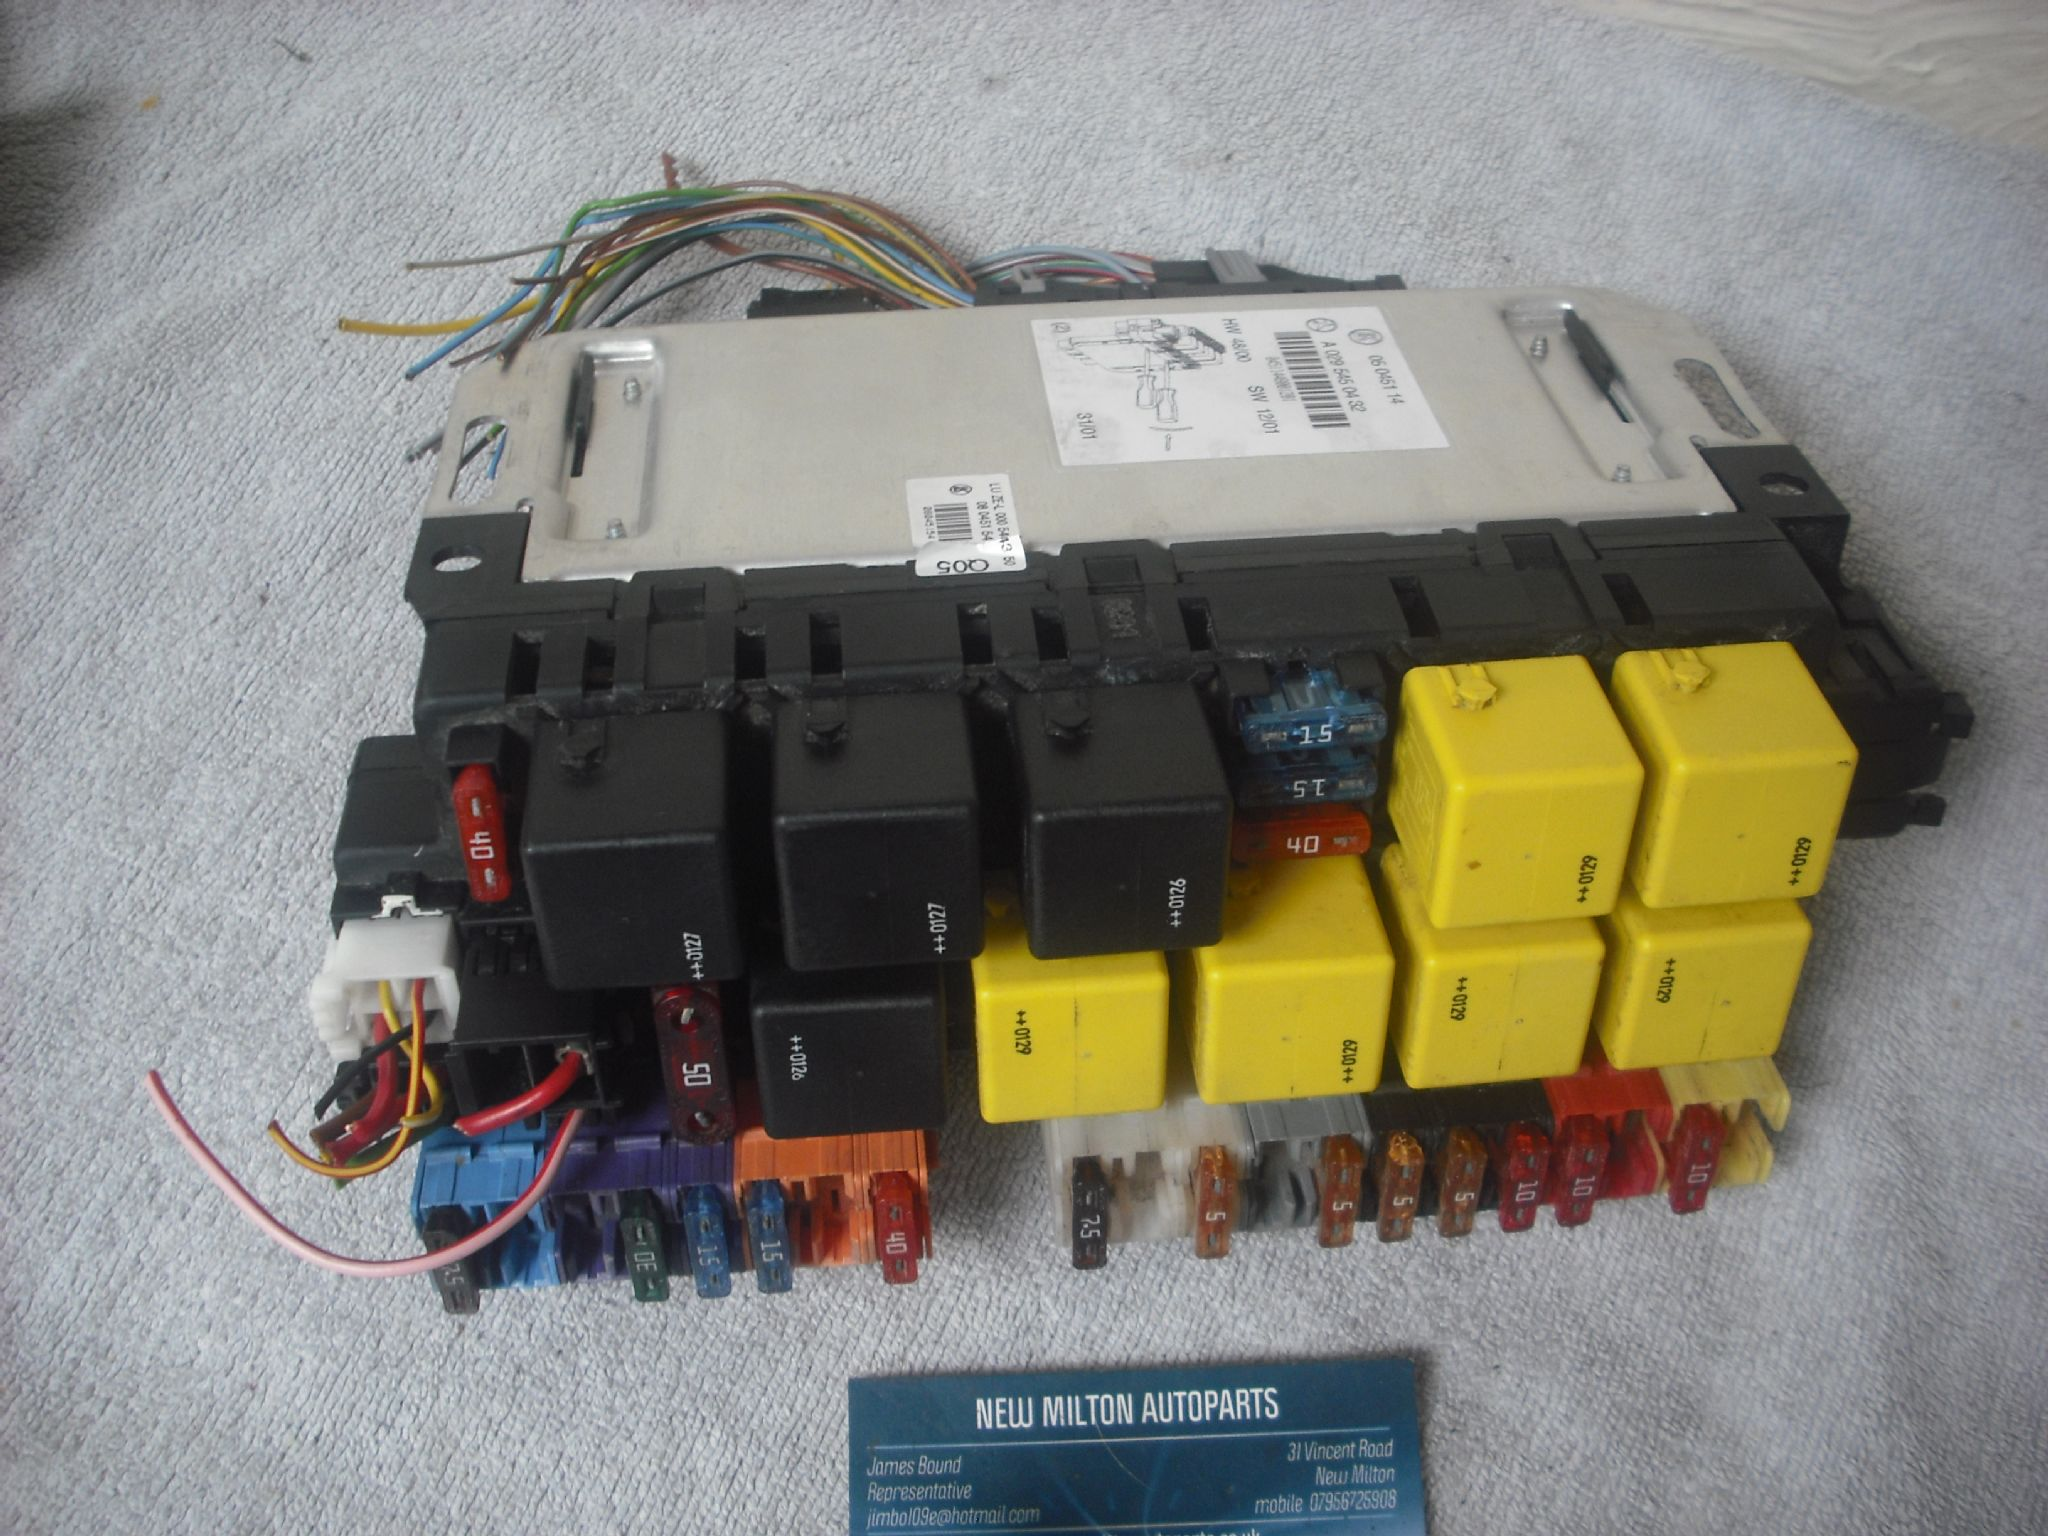 mercede s40 fuse box location 02 jeep cherokee fuse diagram honda civic o2  sensor wiring 2008 Mercedes E350 Fuse Location Mercedes 260E Fuse Location